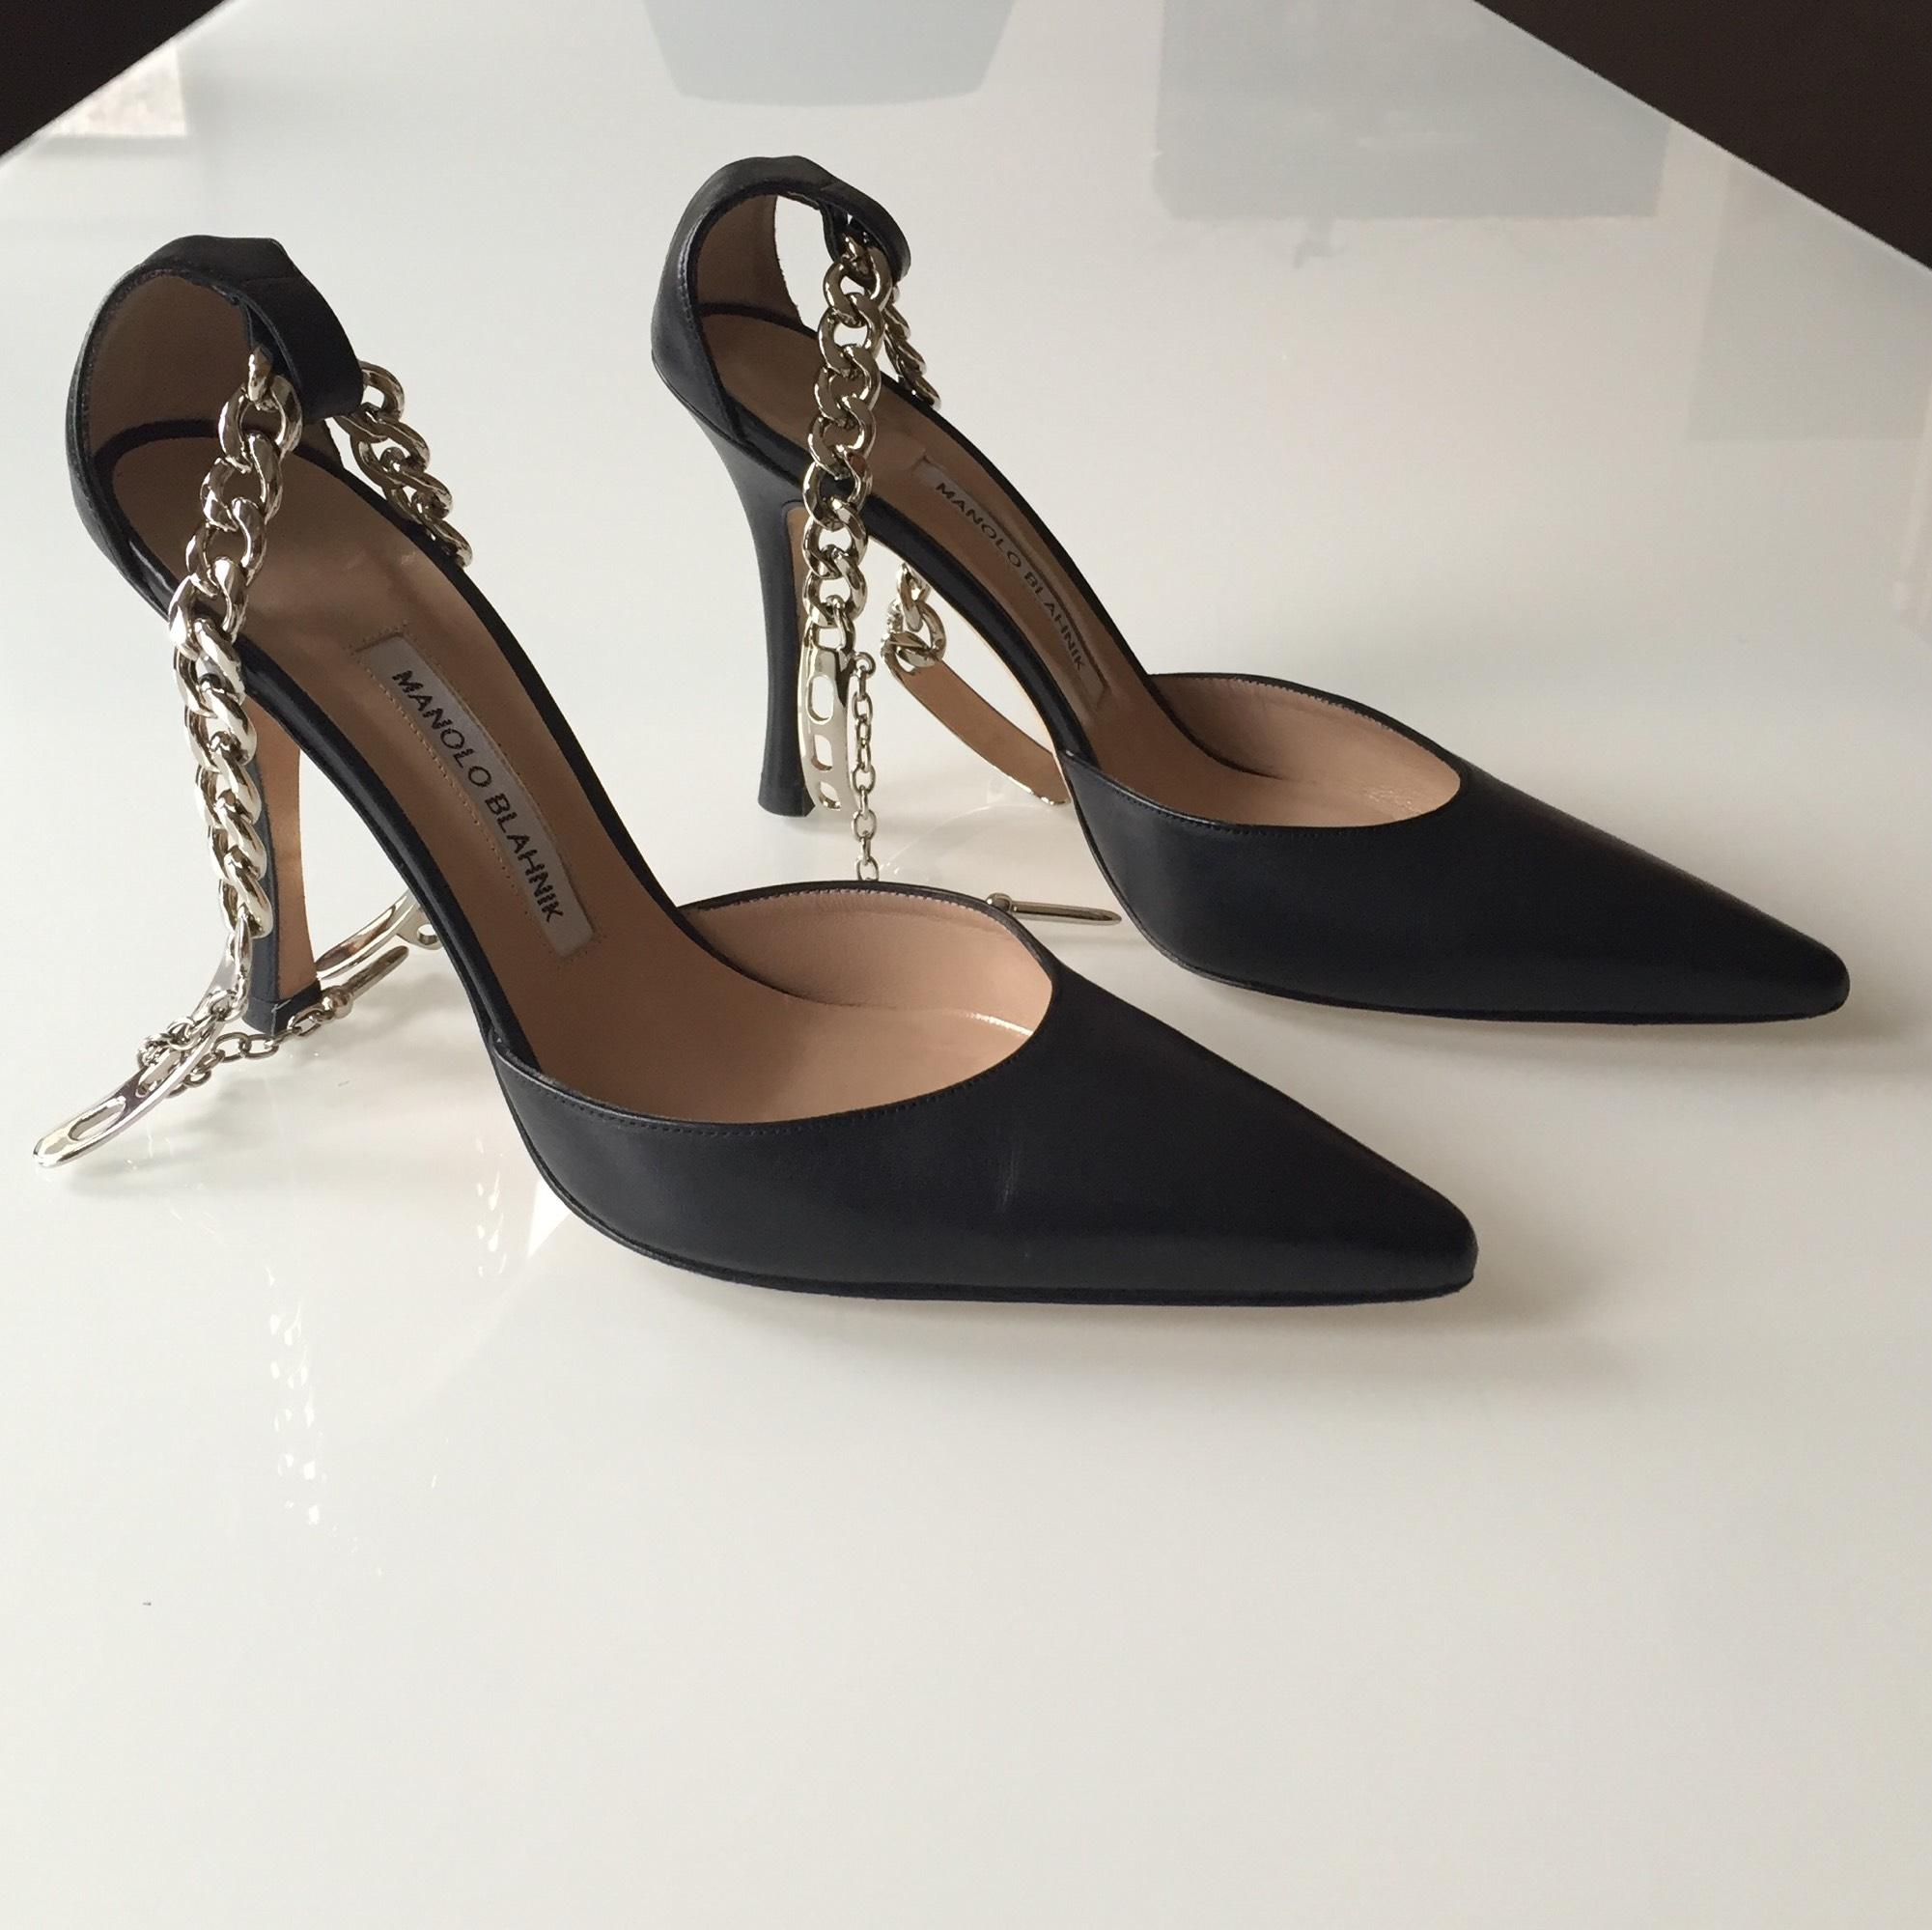 cheap classic best store to get Manolo Blahnik Taislao Leather Pumps cheap sale footlocker pictures outlet top quality rqsAPYh0k2